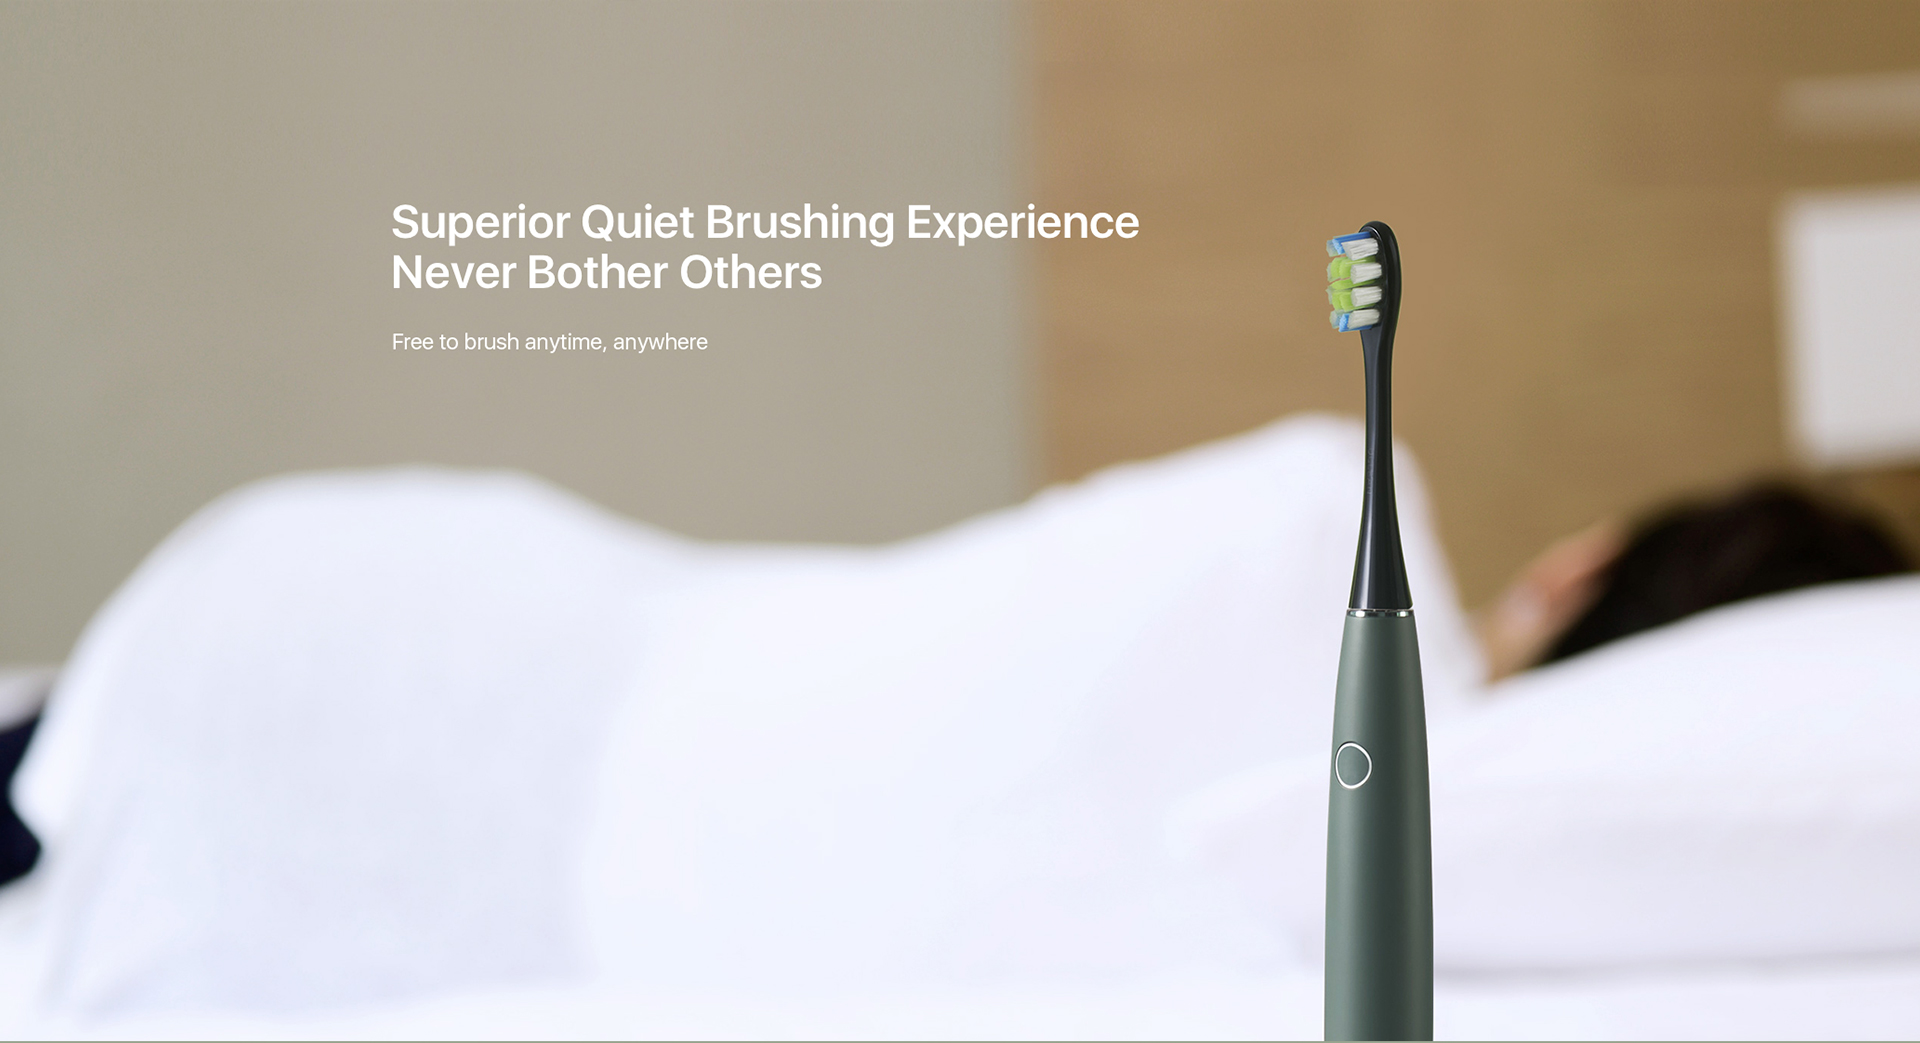 Superior Quiet Brushing Experience Never Bother Others